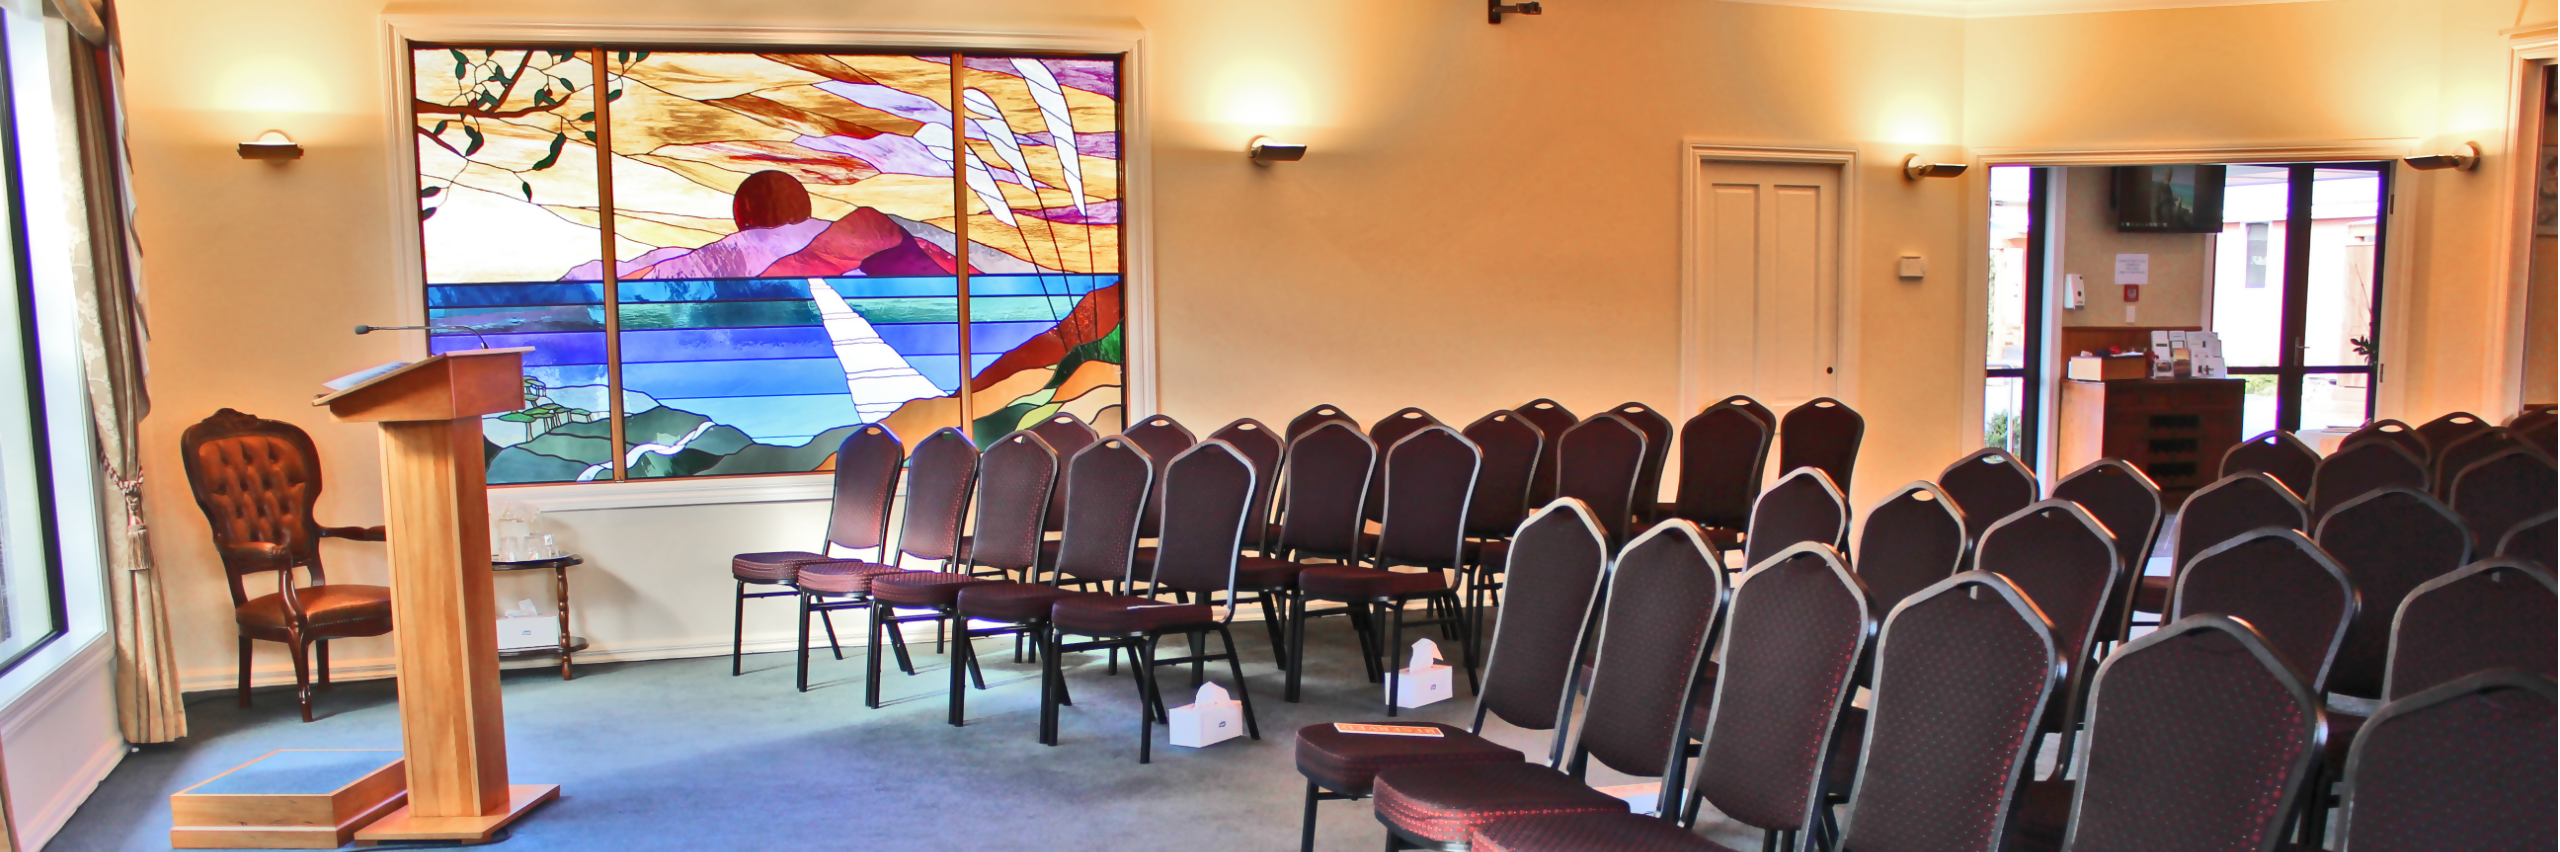 Kapiti Coast Funeral Home - Chapel